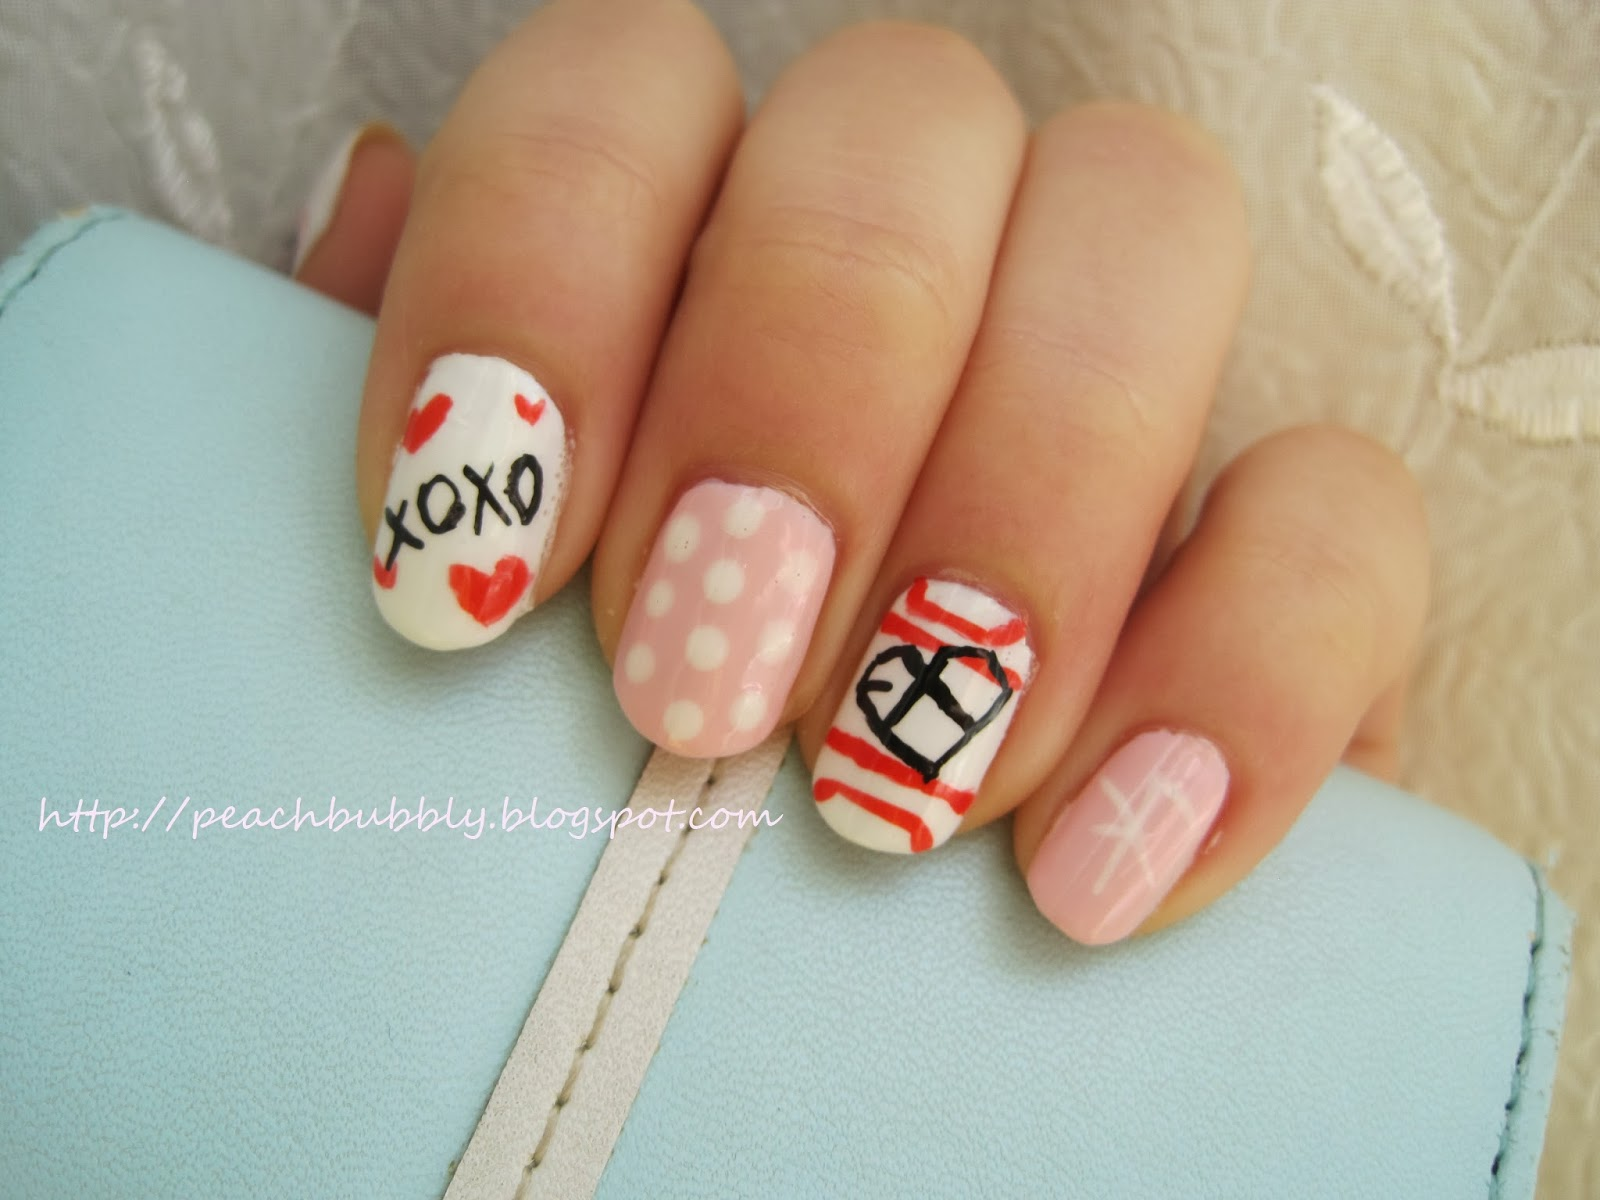 peachbubbly: Kpop Nails: EXO Inspired Valentine\'s Day Nail Art